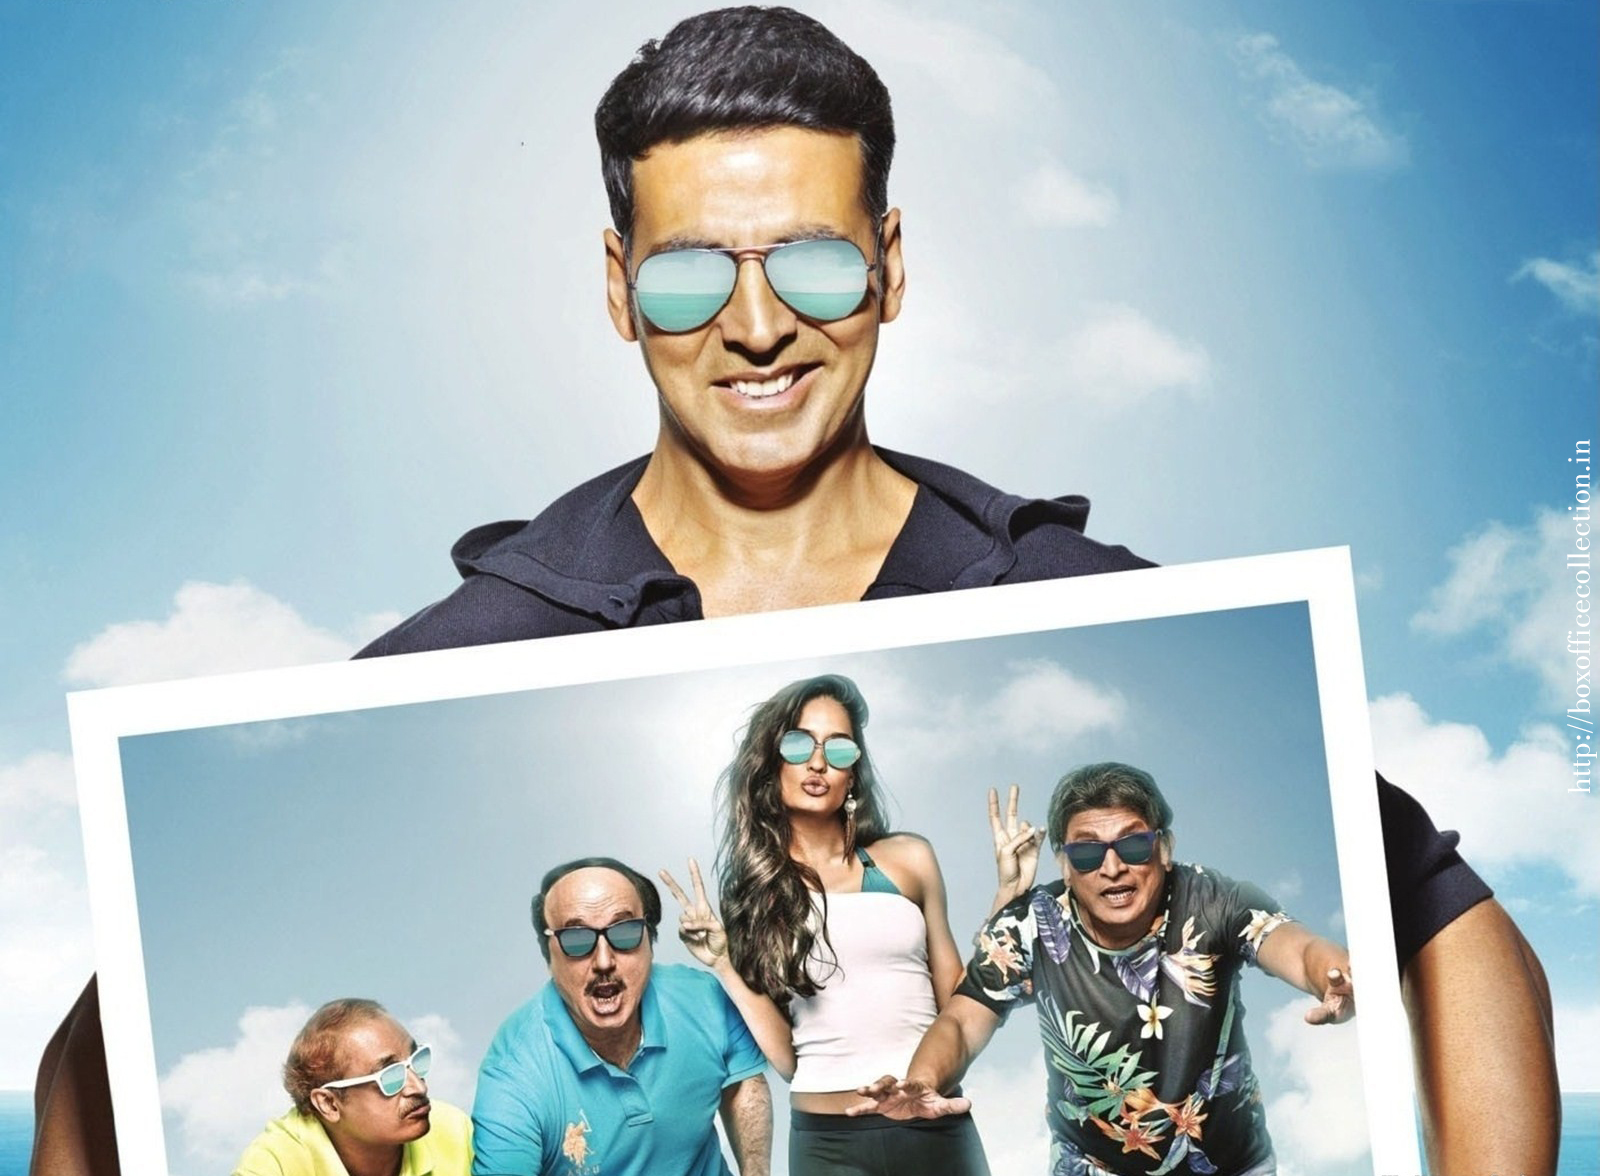 the-shaukeens-movie-poster